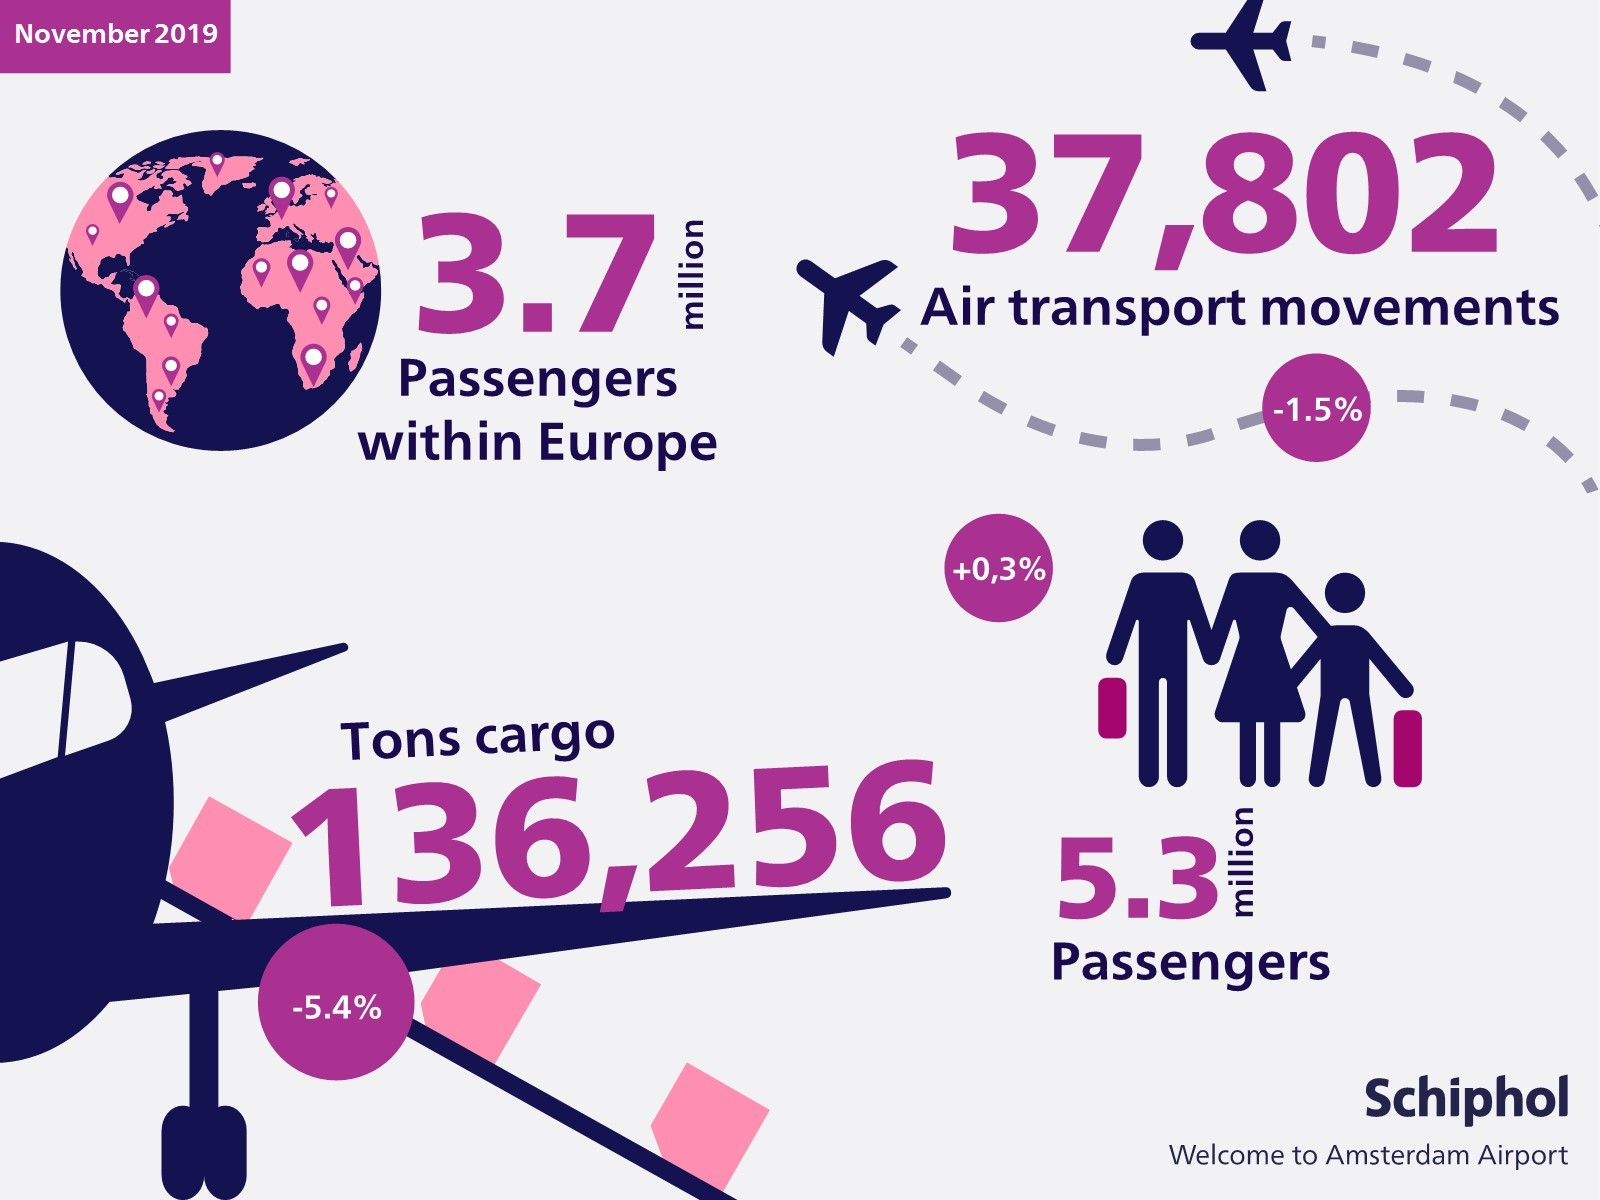 Traffic and transport figures for November 2019